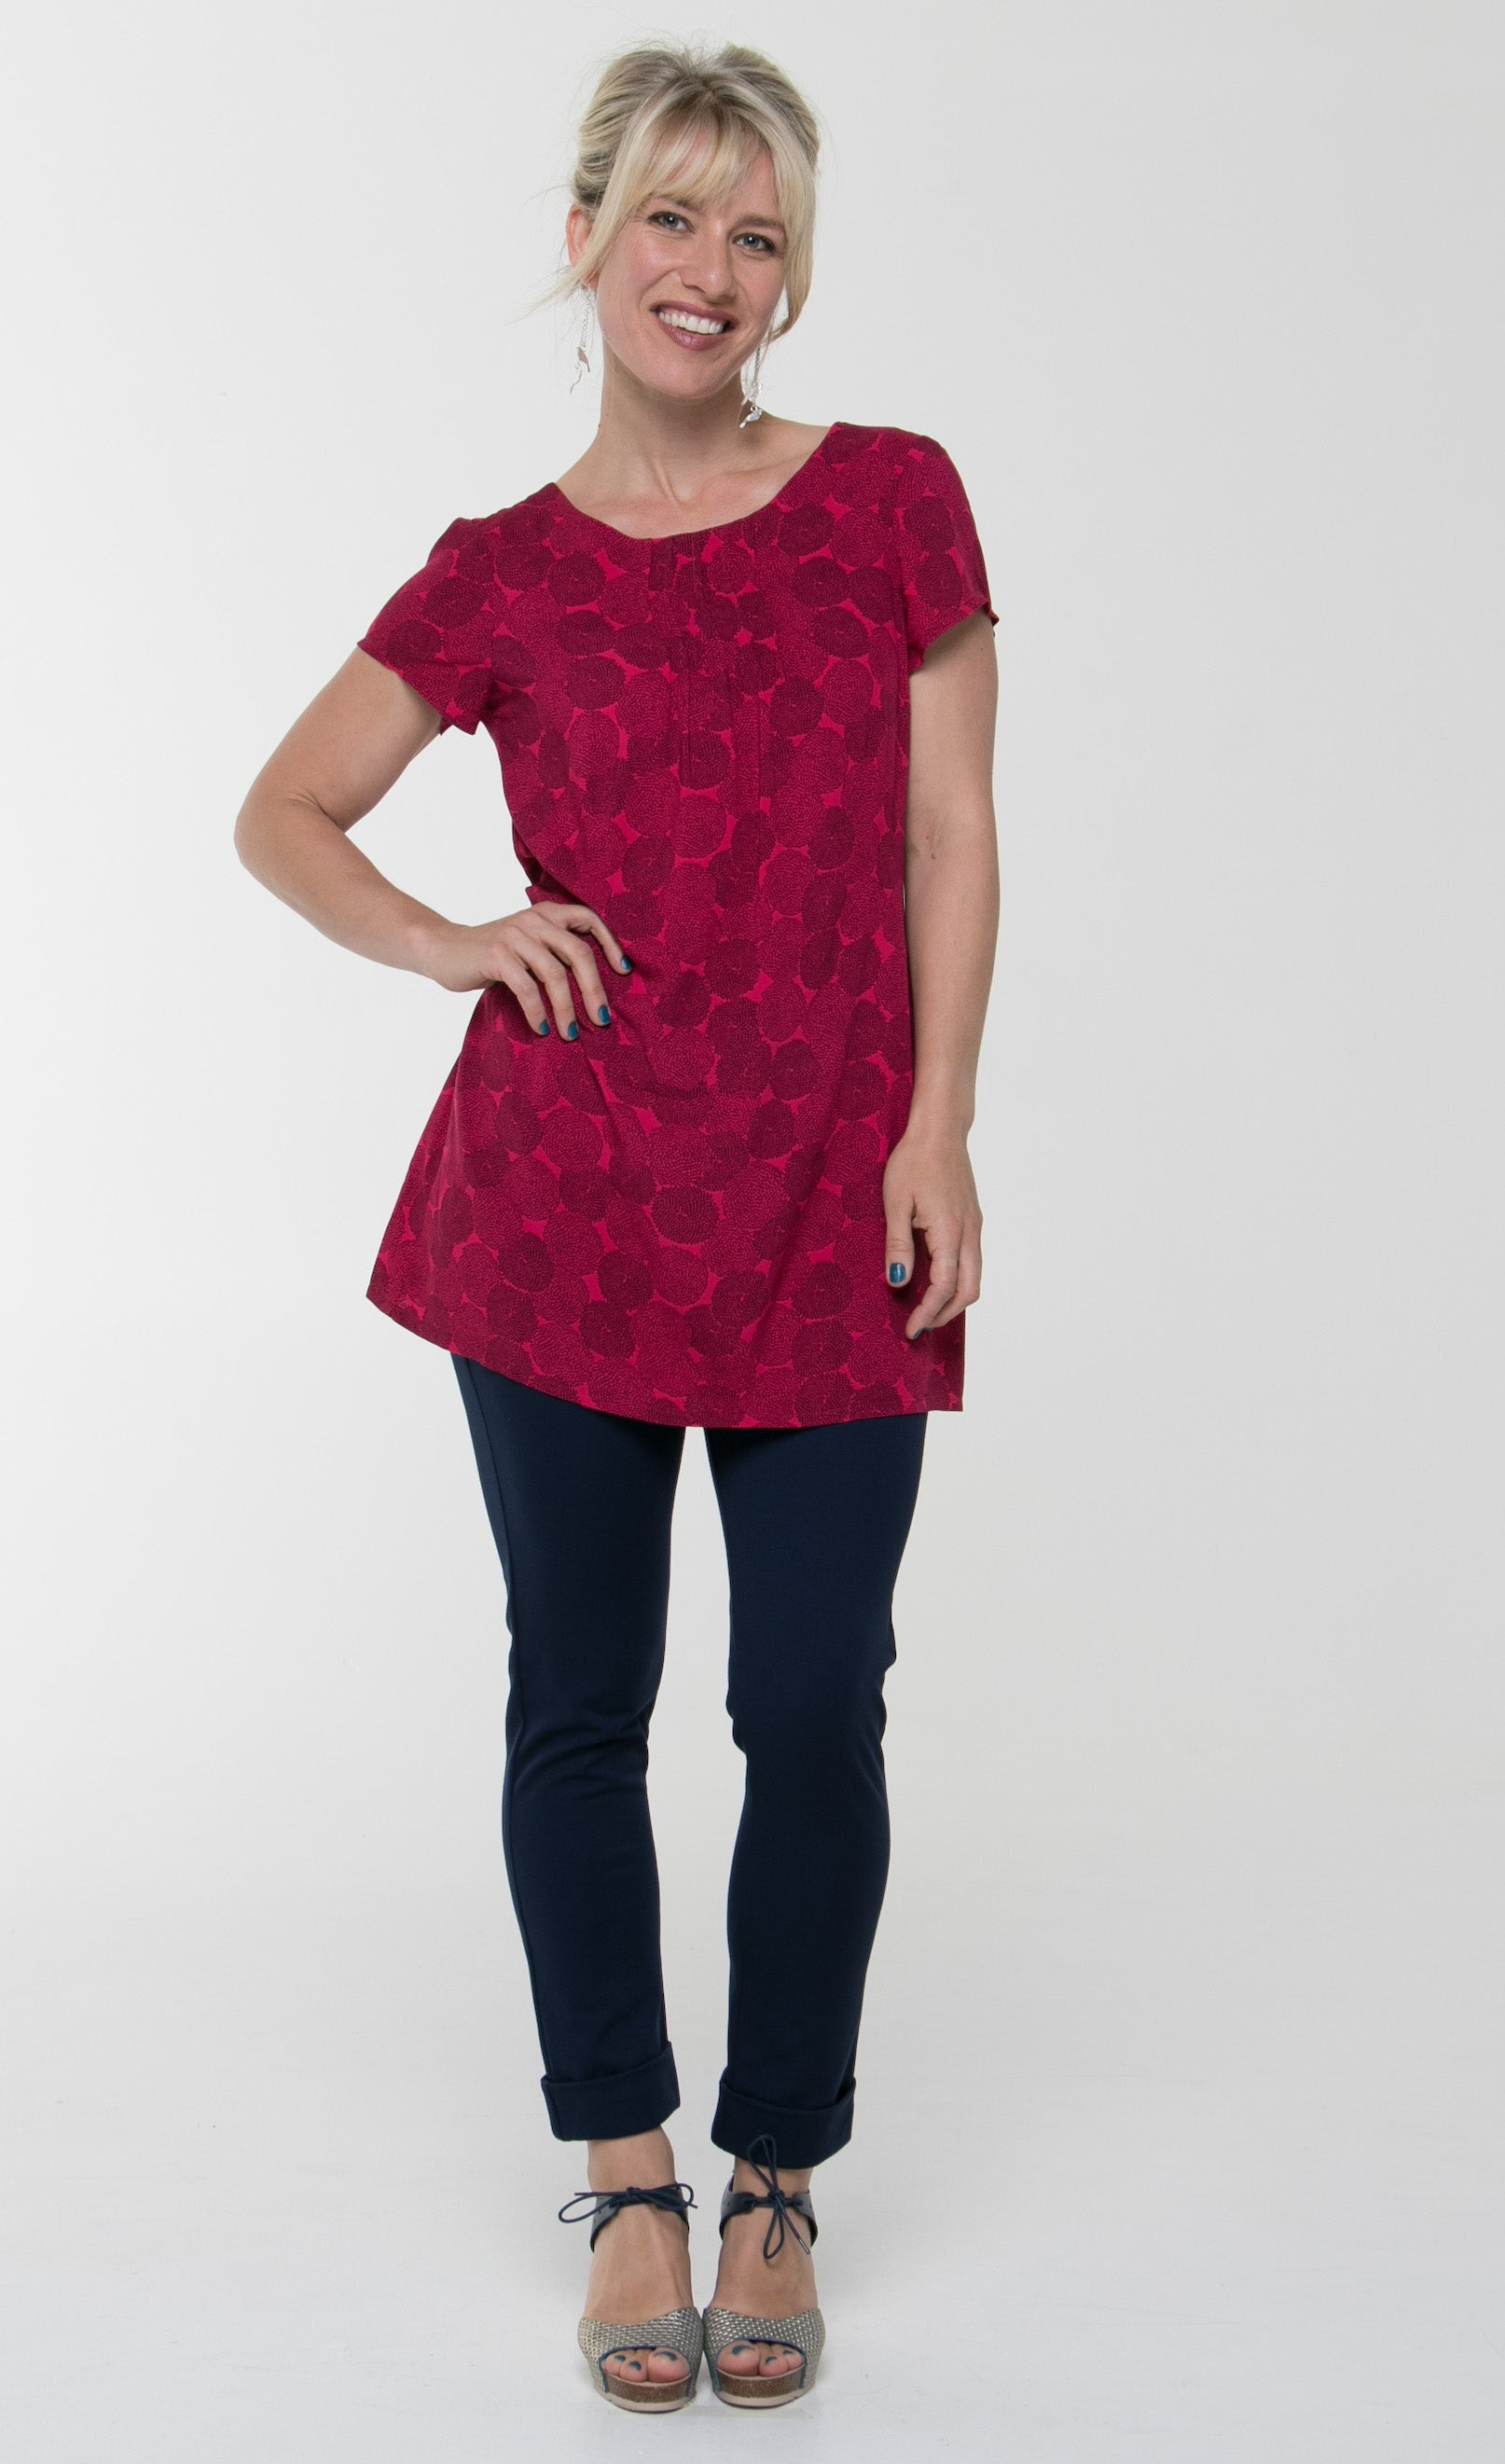 Vesta 5 Pin Top - Raspberry